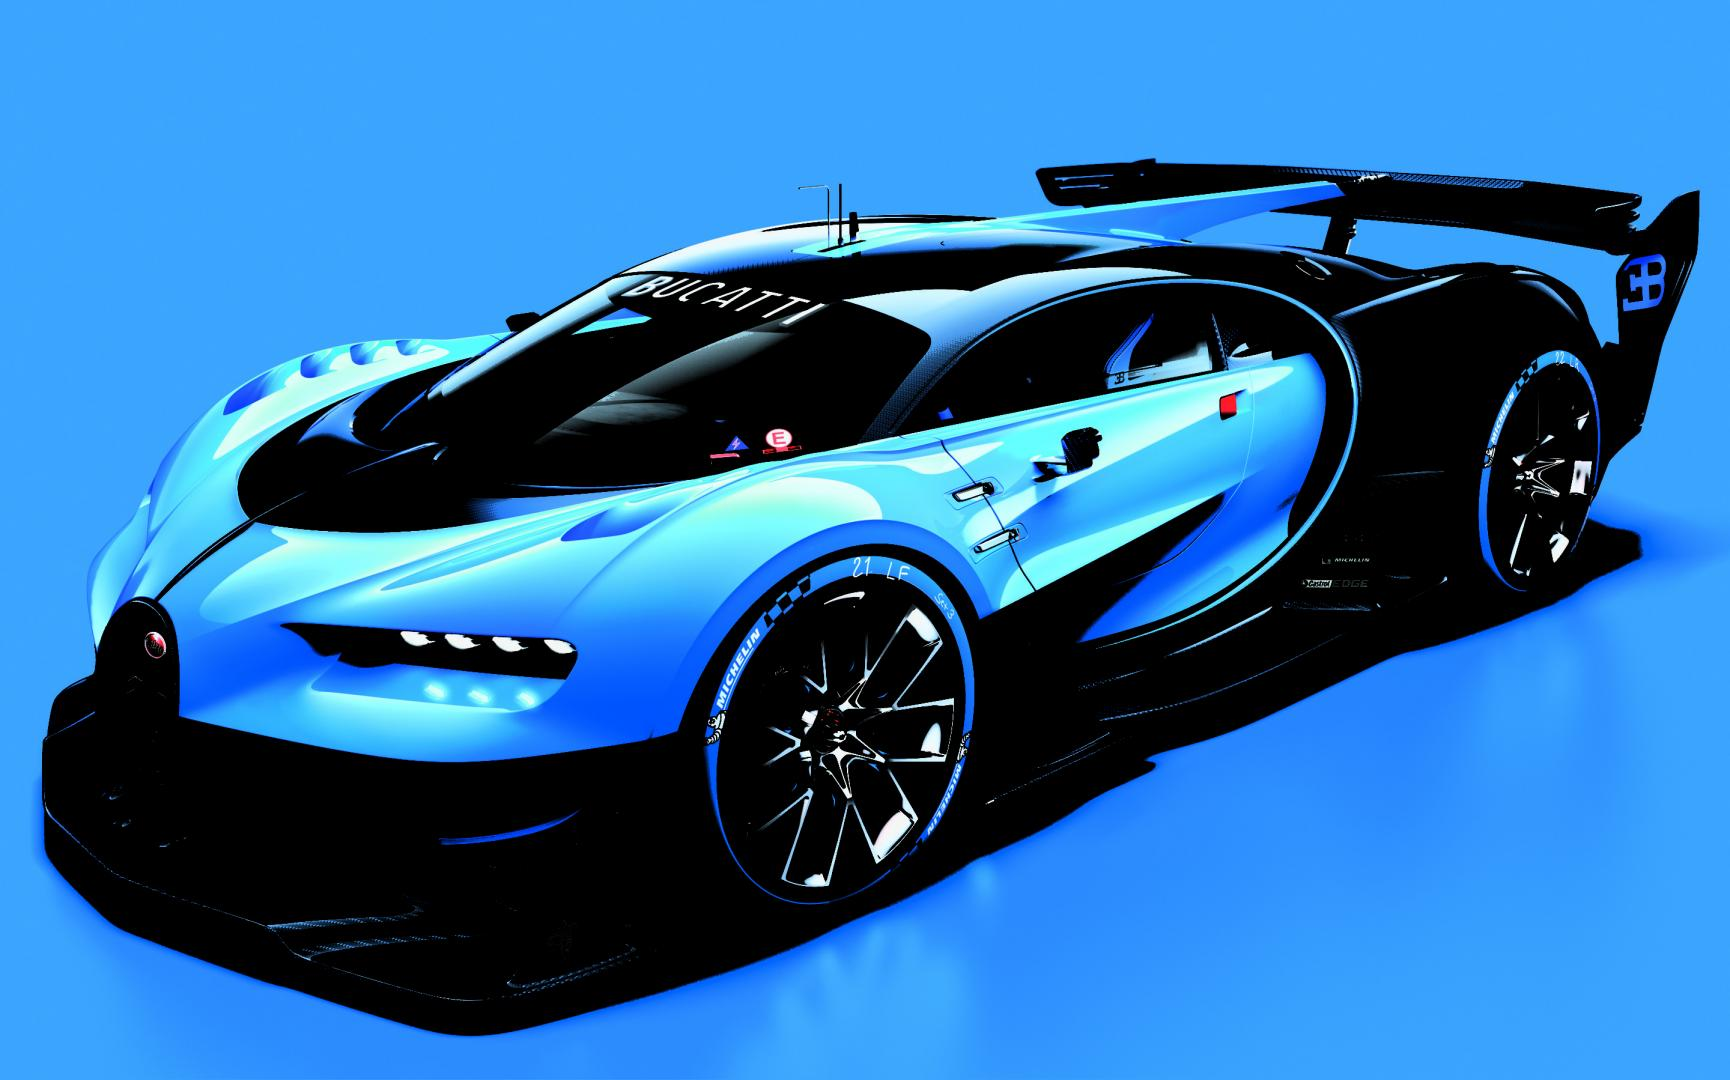 bugatti vision gt performance with Bugatti Vision Gt De Toekomst on 5 Best Vision Gran Turismo Cars Date furthermore 2019 Nissan Gt R R36 in addition Bugatti Reveals Vision Gran Turismo as well Four Ford Gt Race Cars Will  pete At Le Mans 104412 furthermore Bugatti Vision Gran Turismo Concept.